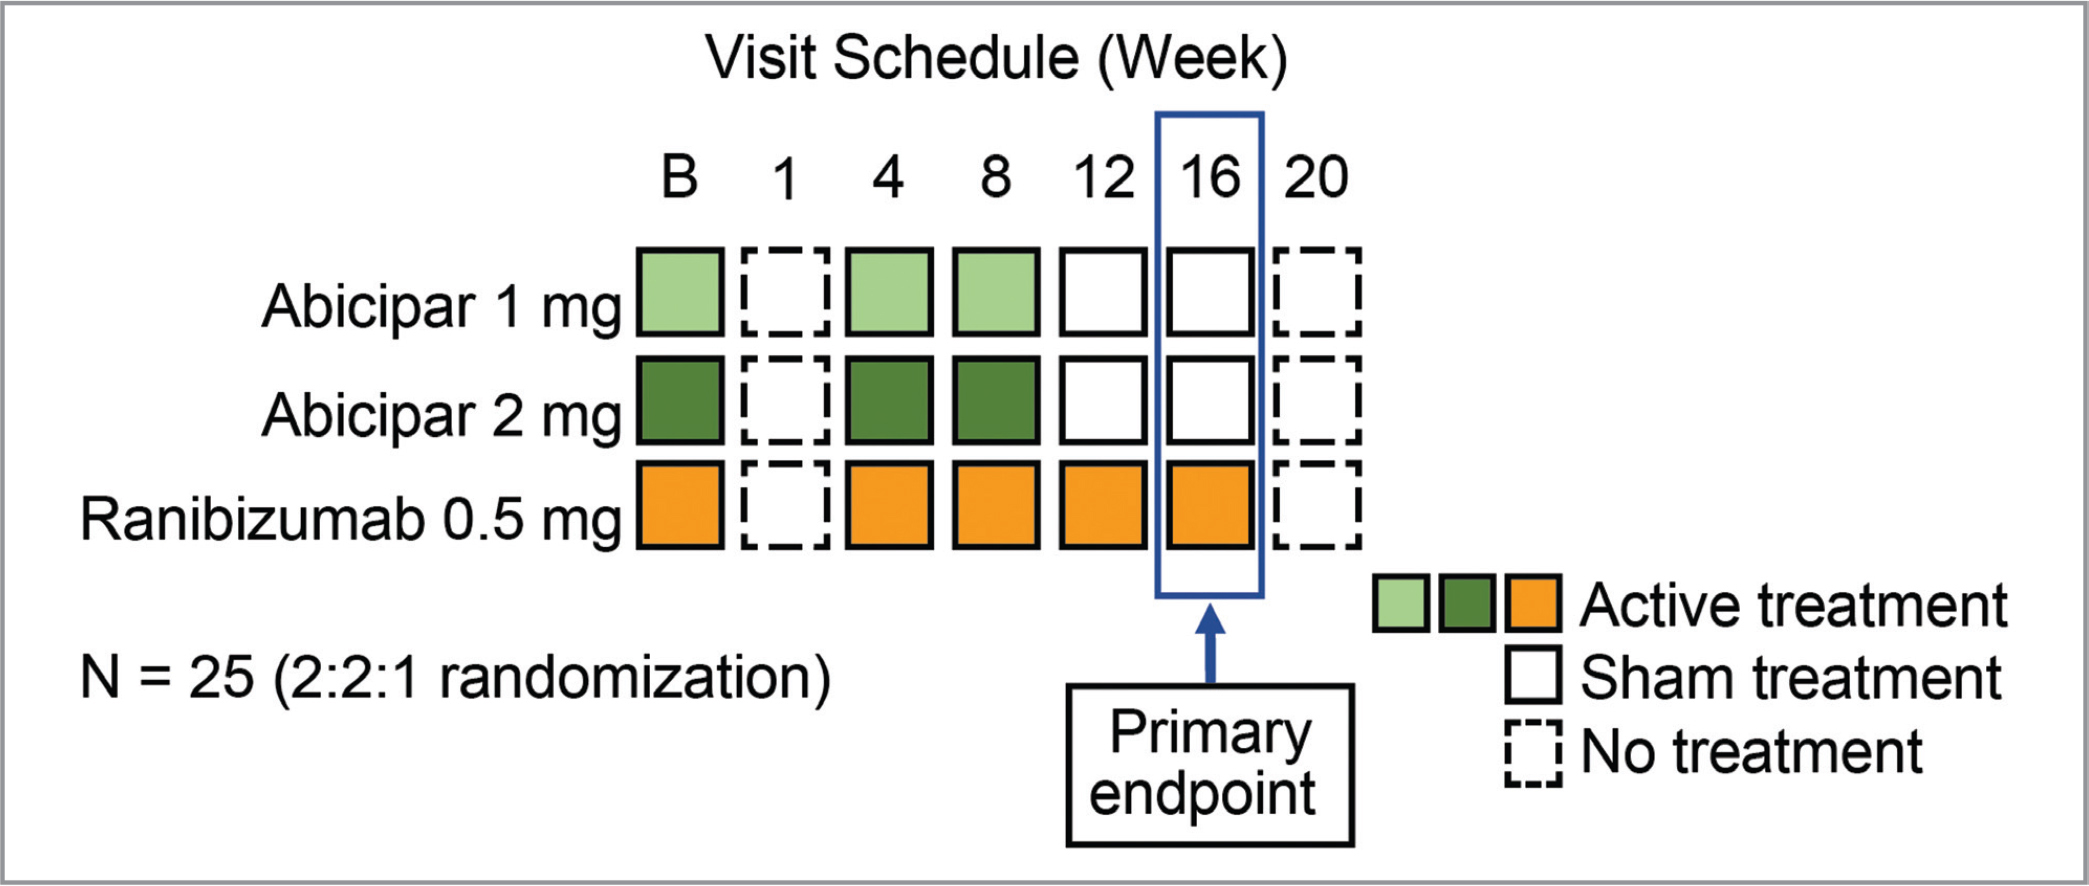 Study design schematic. Additional safety study visits were scheduled 2 days after the baseline and week 8 visits. B = baseline.